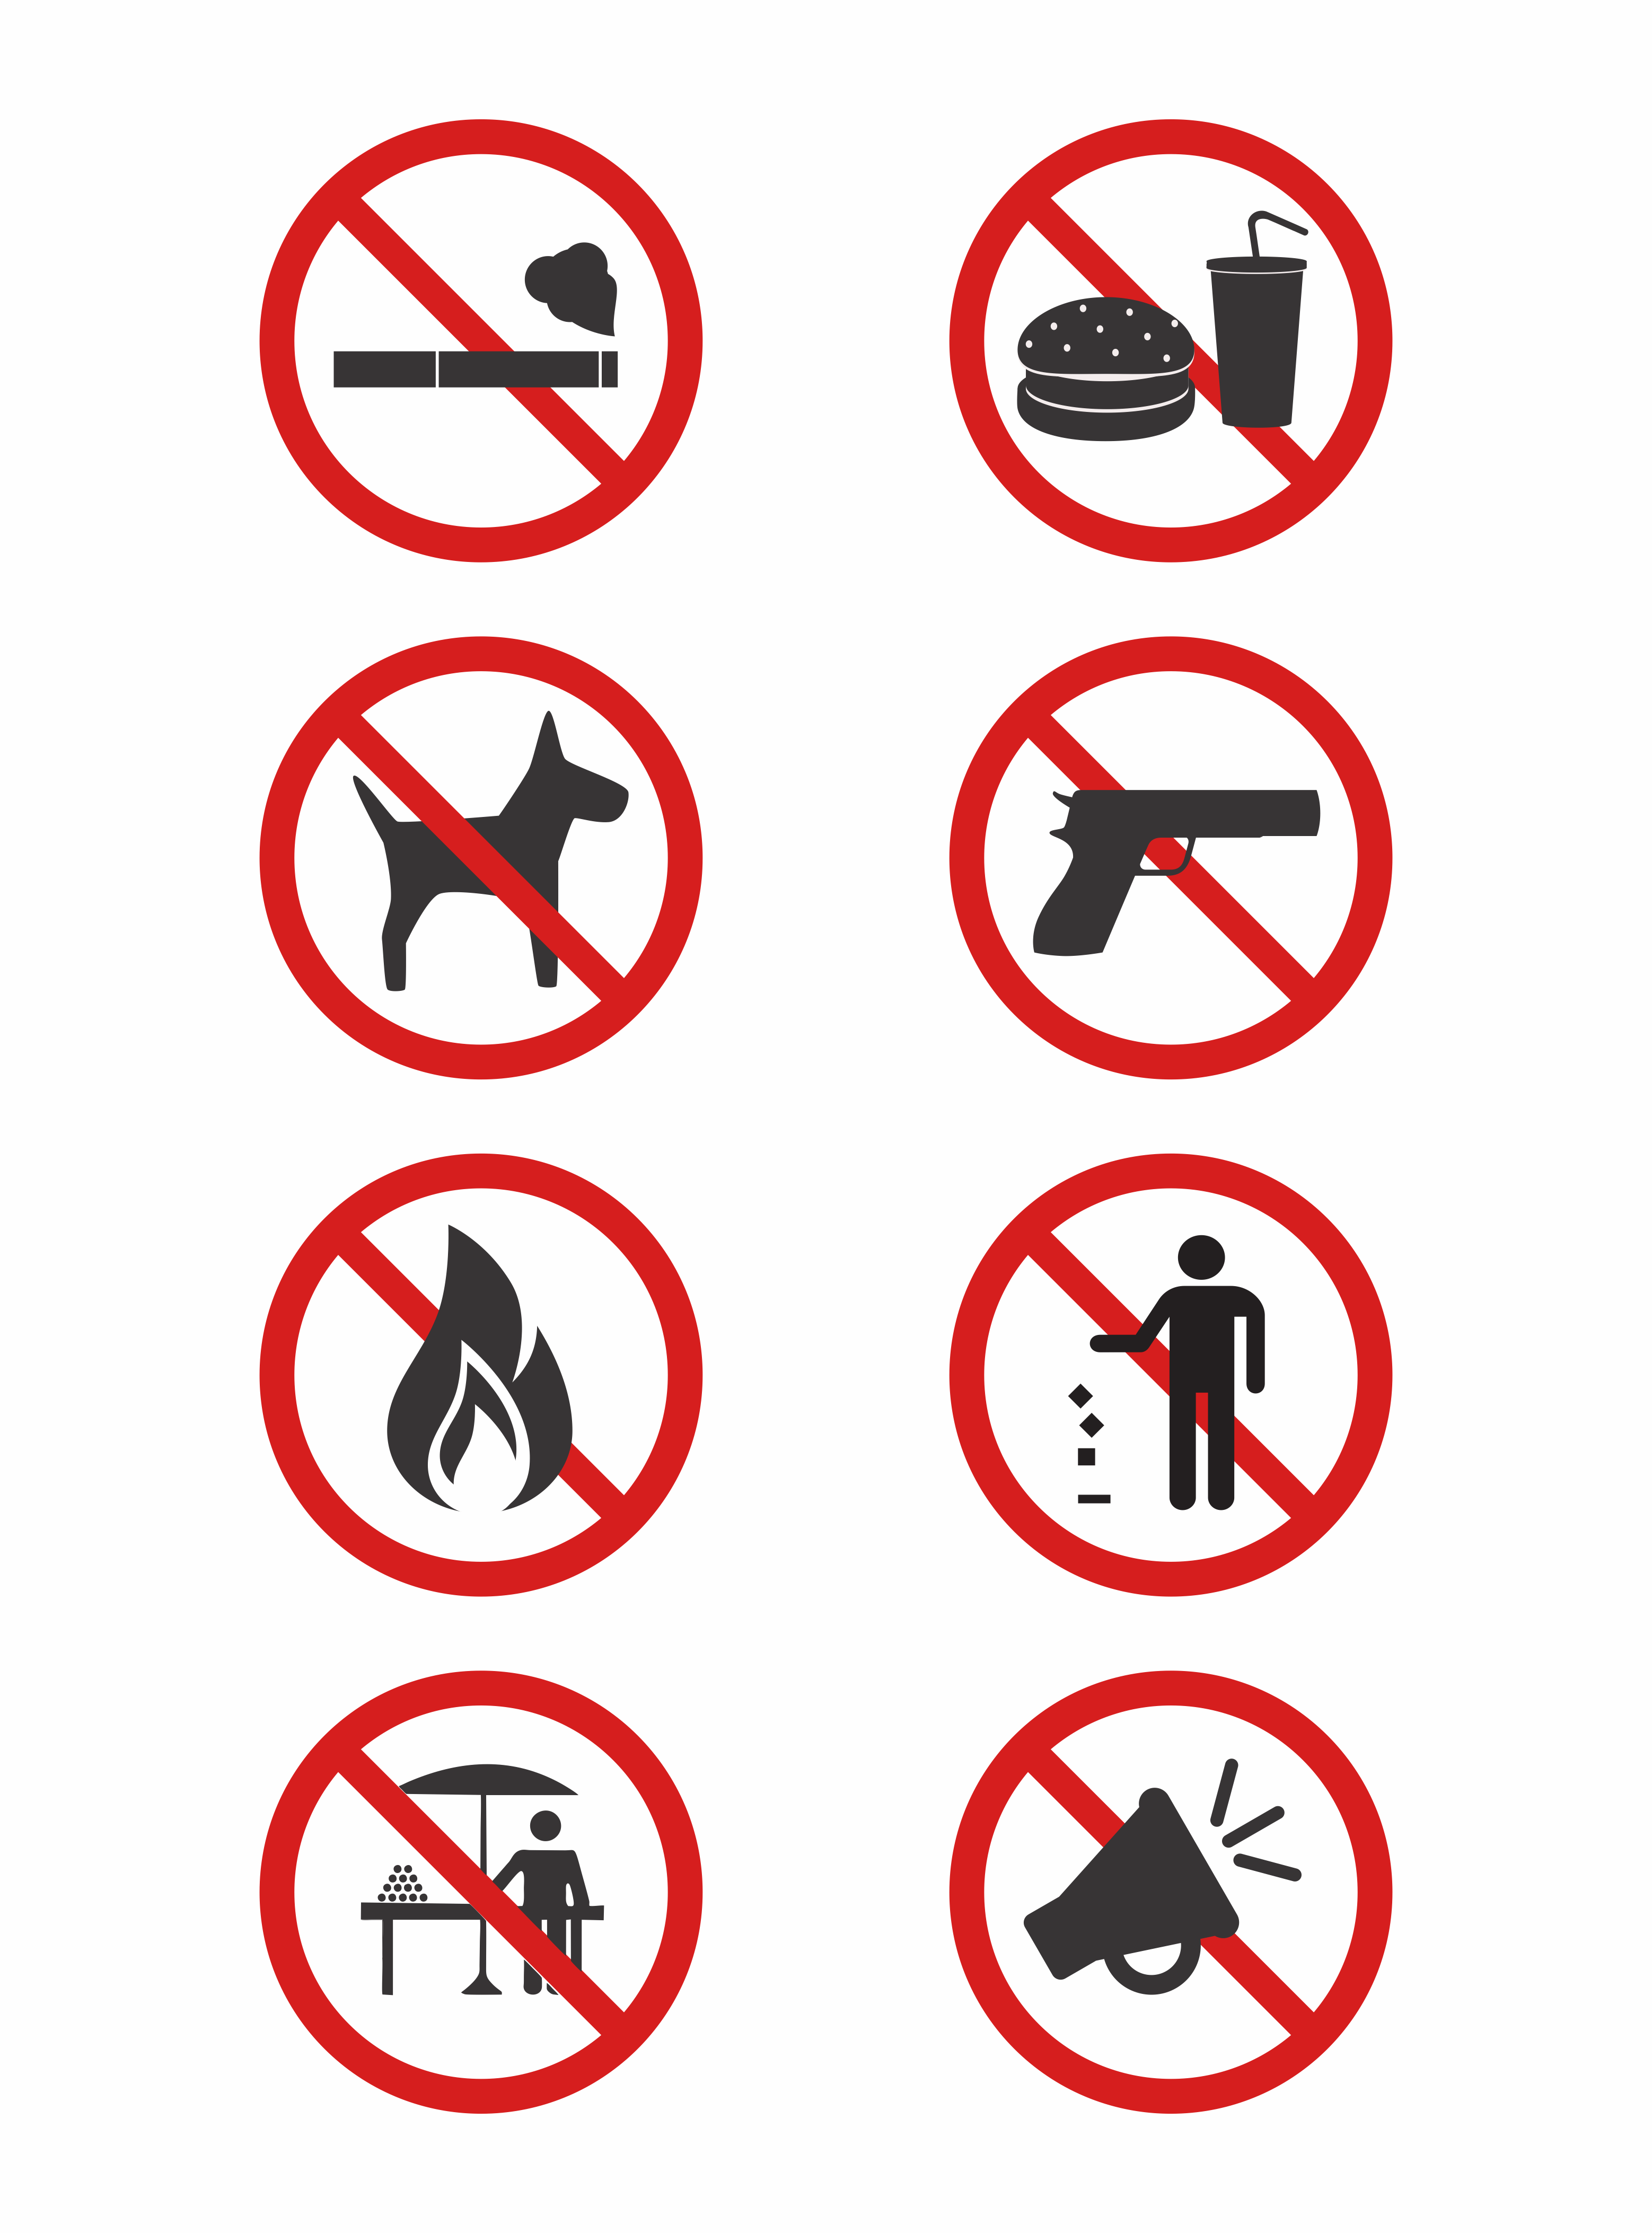 A collection of prohibited warning signs